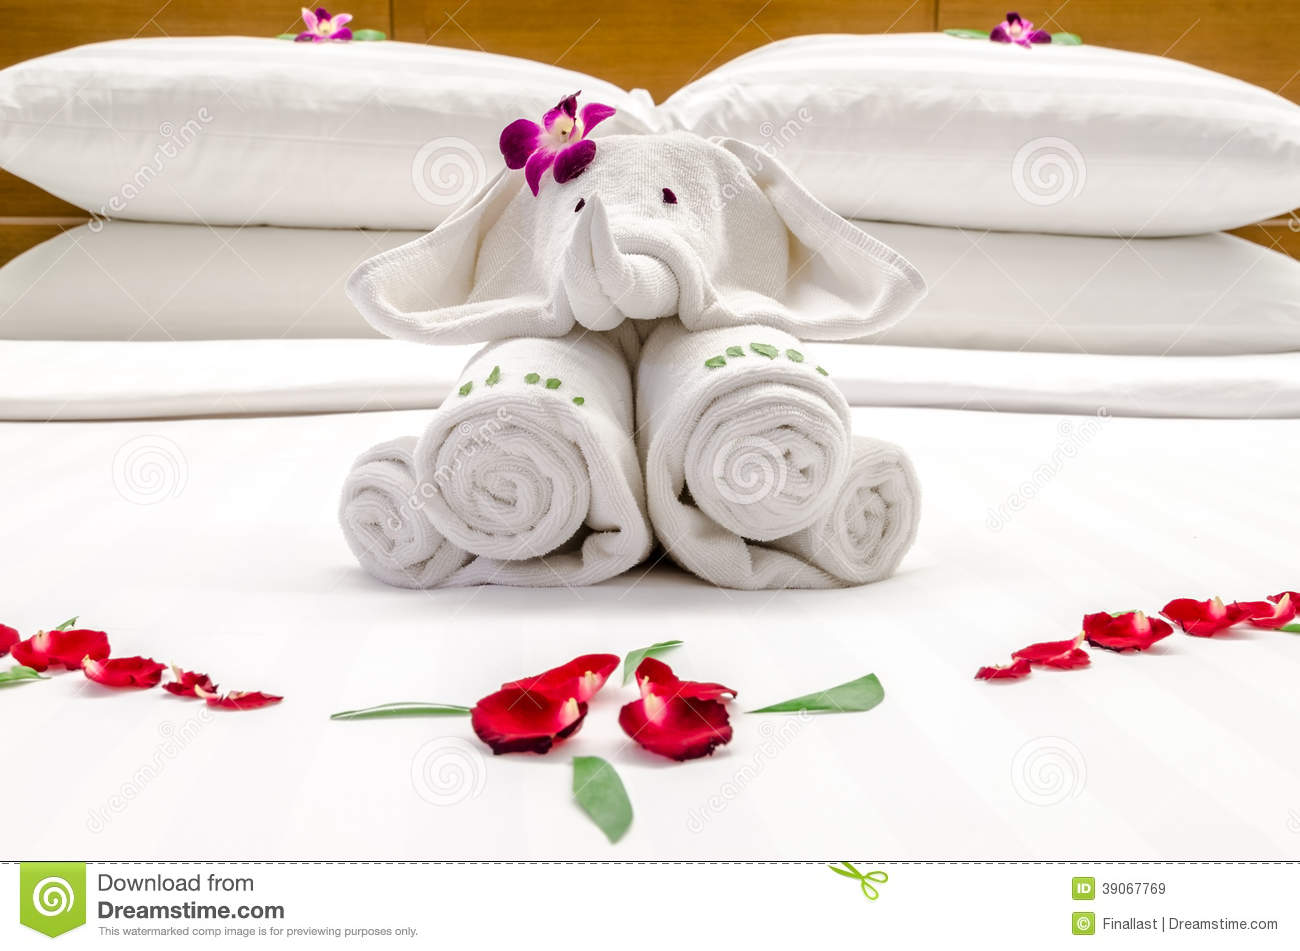 Royalty Free Stock Photo  Download Bed Decoration. Bed Decoration With Flowers And Elephant Stock Image   Image  39067769